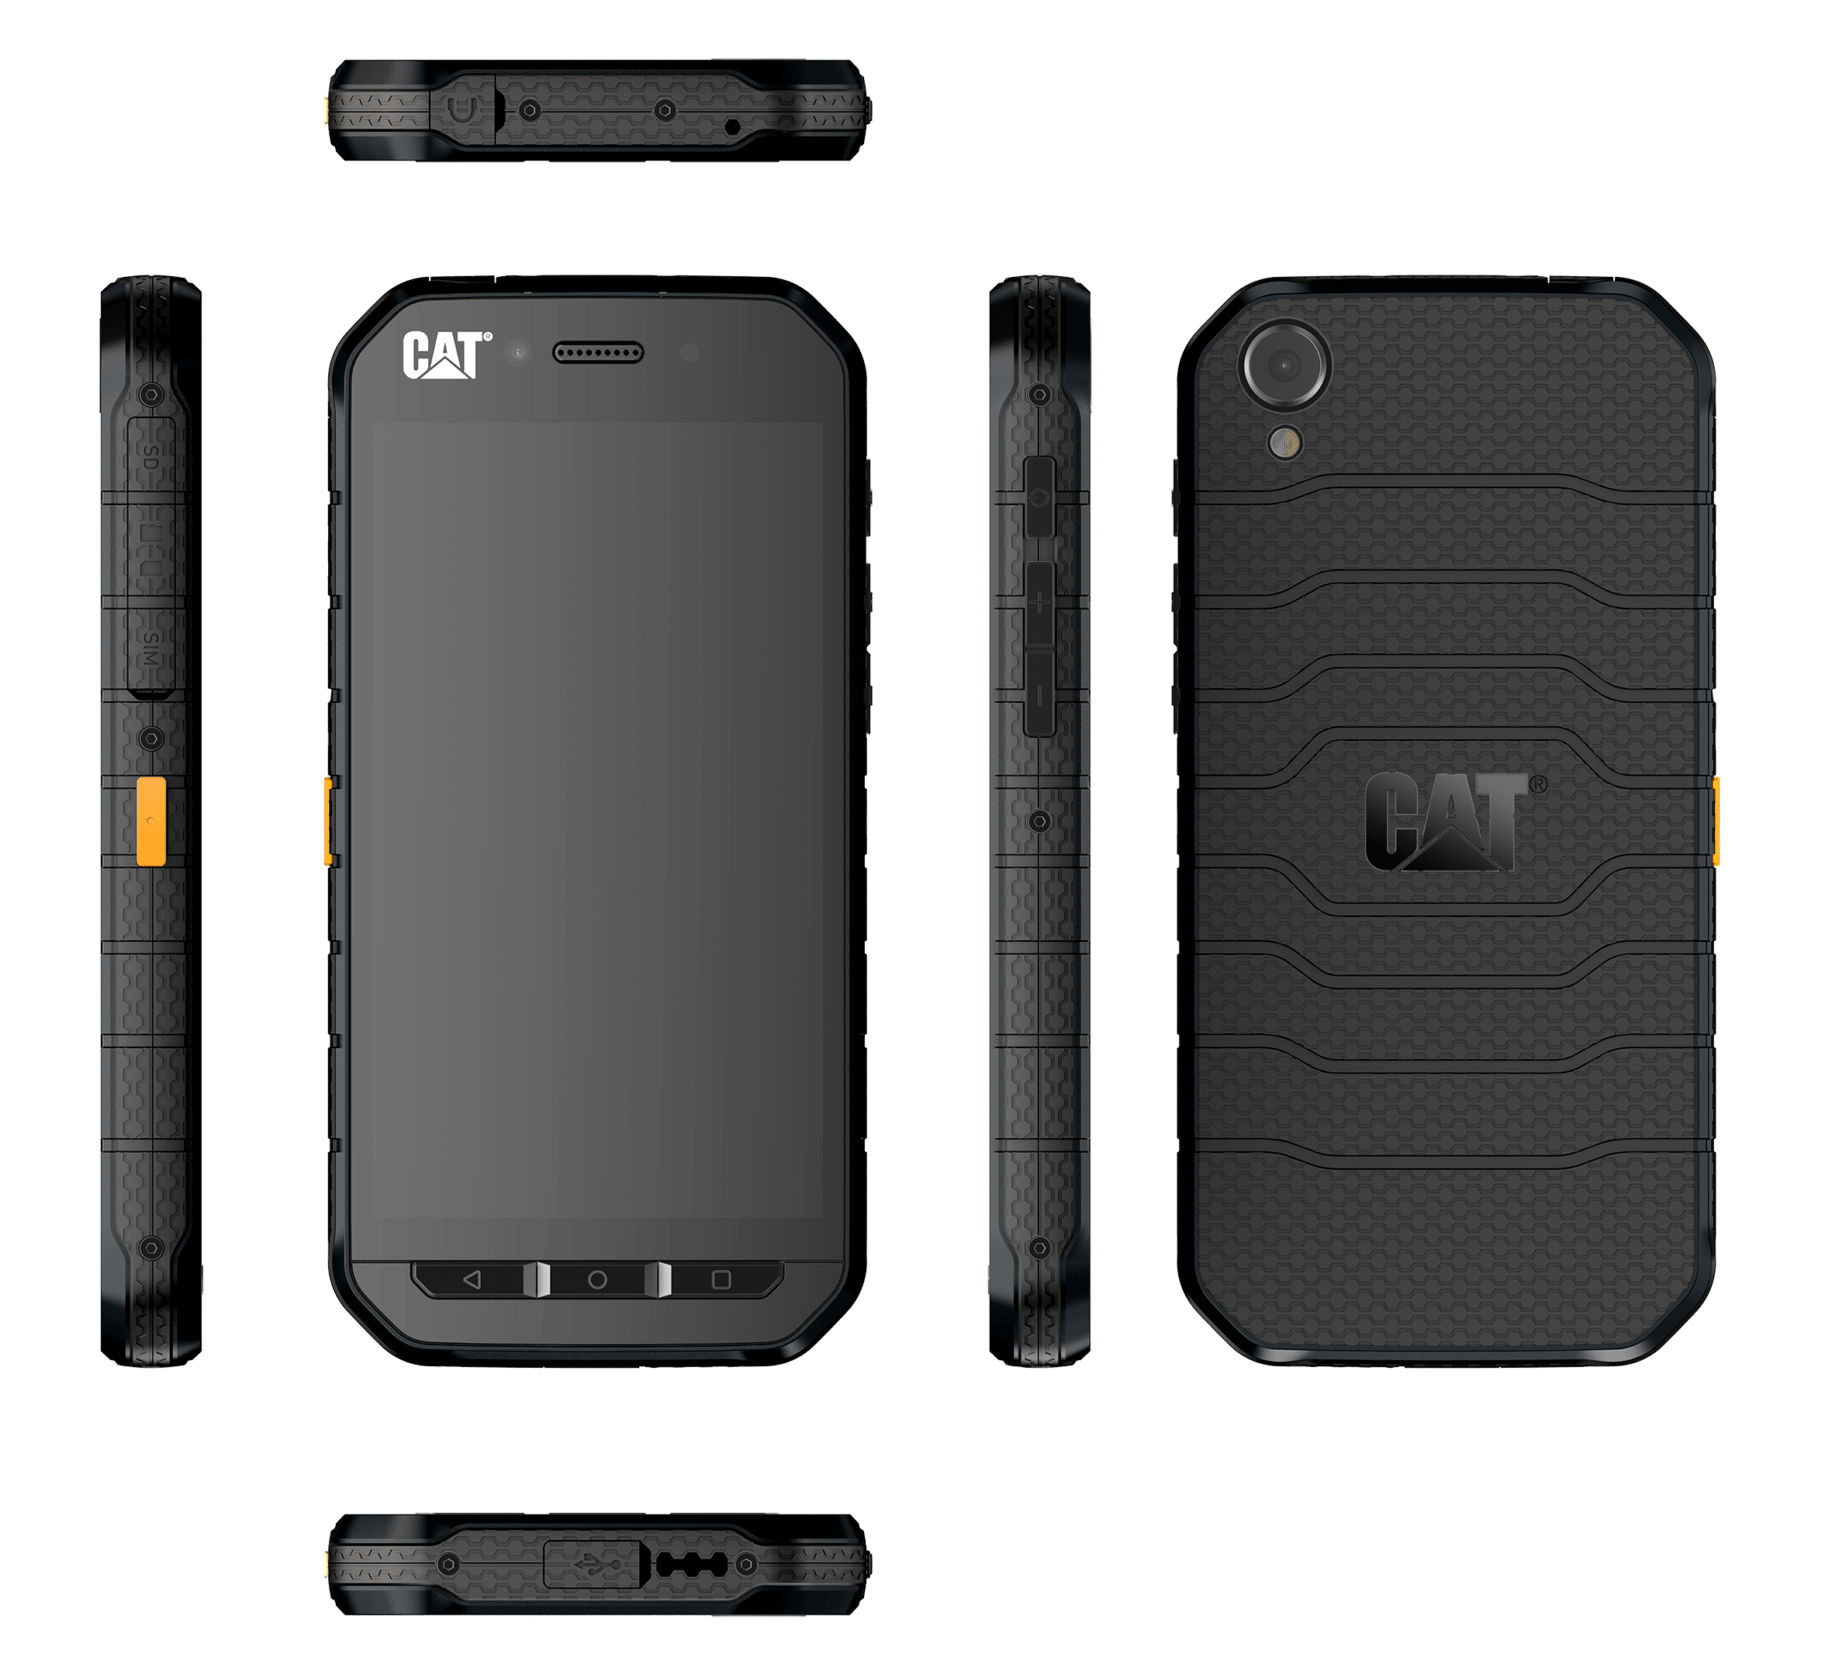 Review: The CAT S41 Phone Is Your Outdoor Sidekick